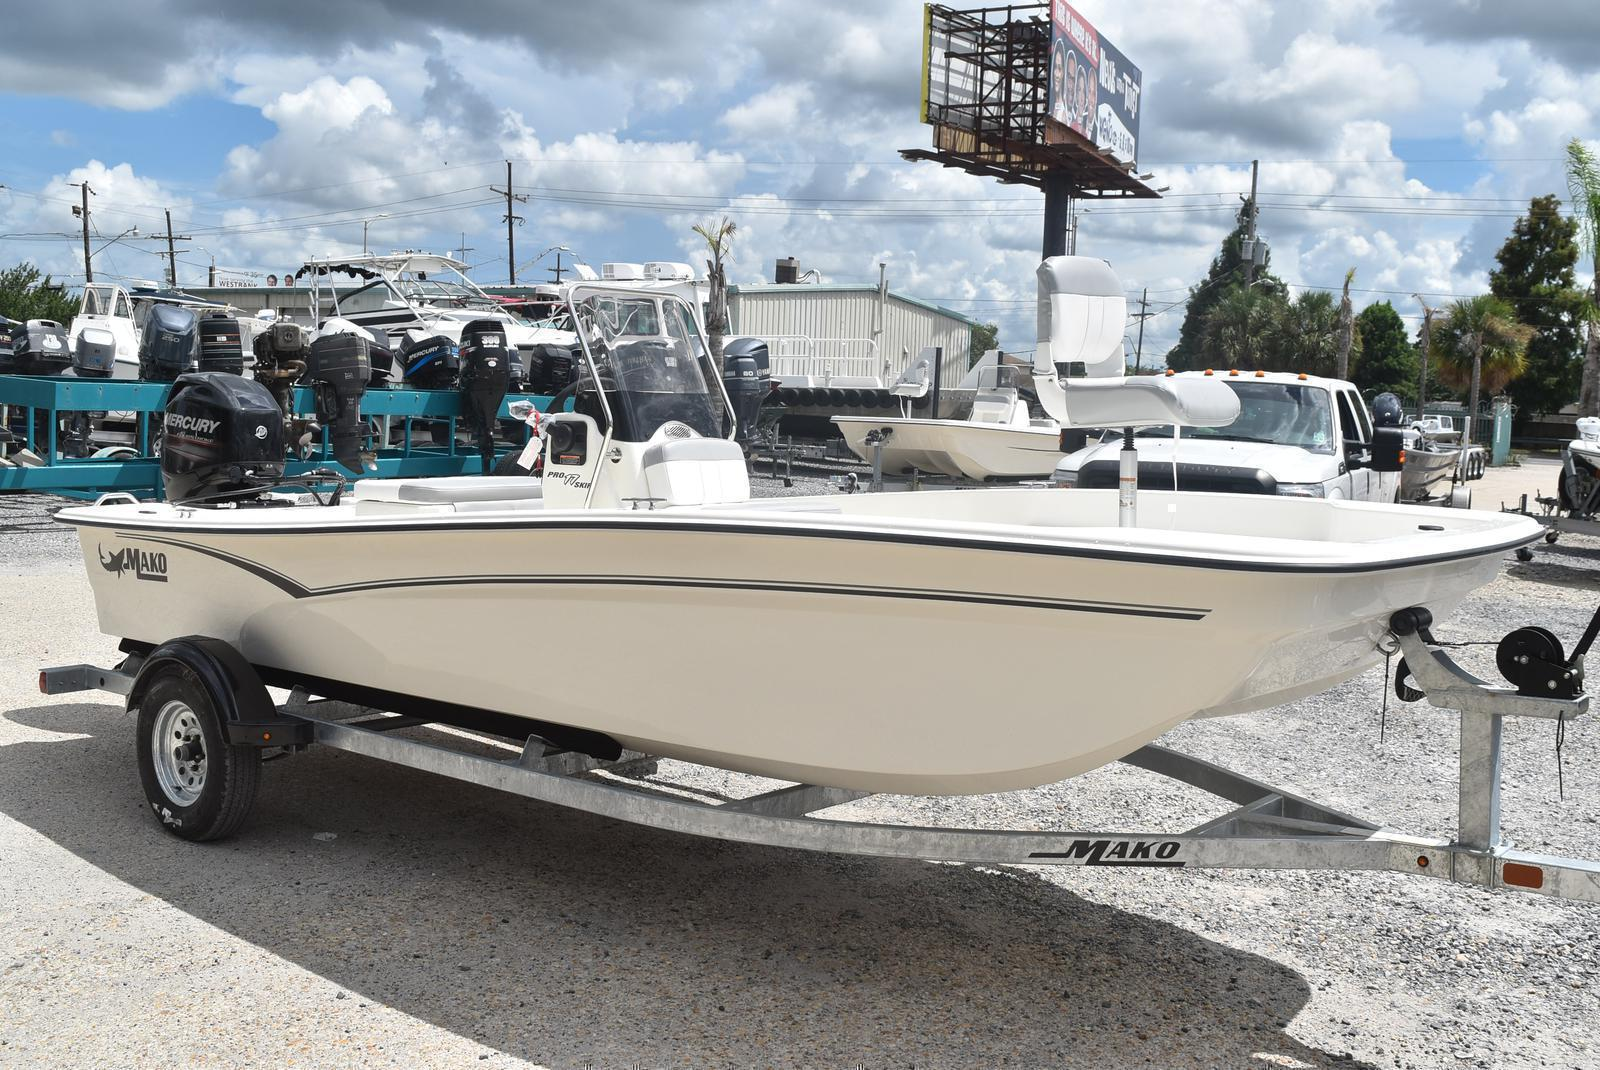 2020 Mako boat for sale, model of the boat is Pro Skiff 17, 75 ELPT & Image # 641 of 702